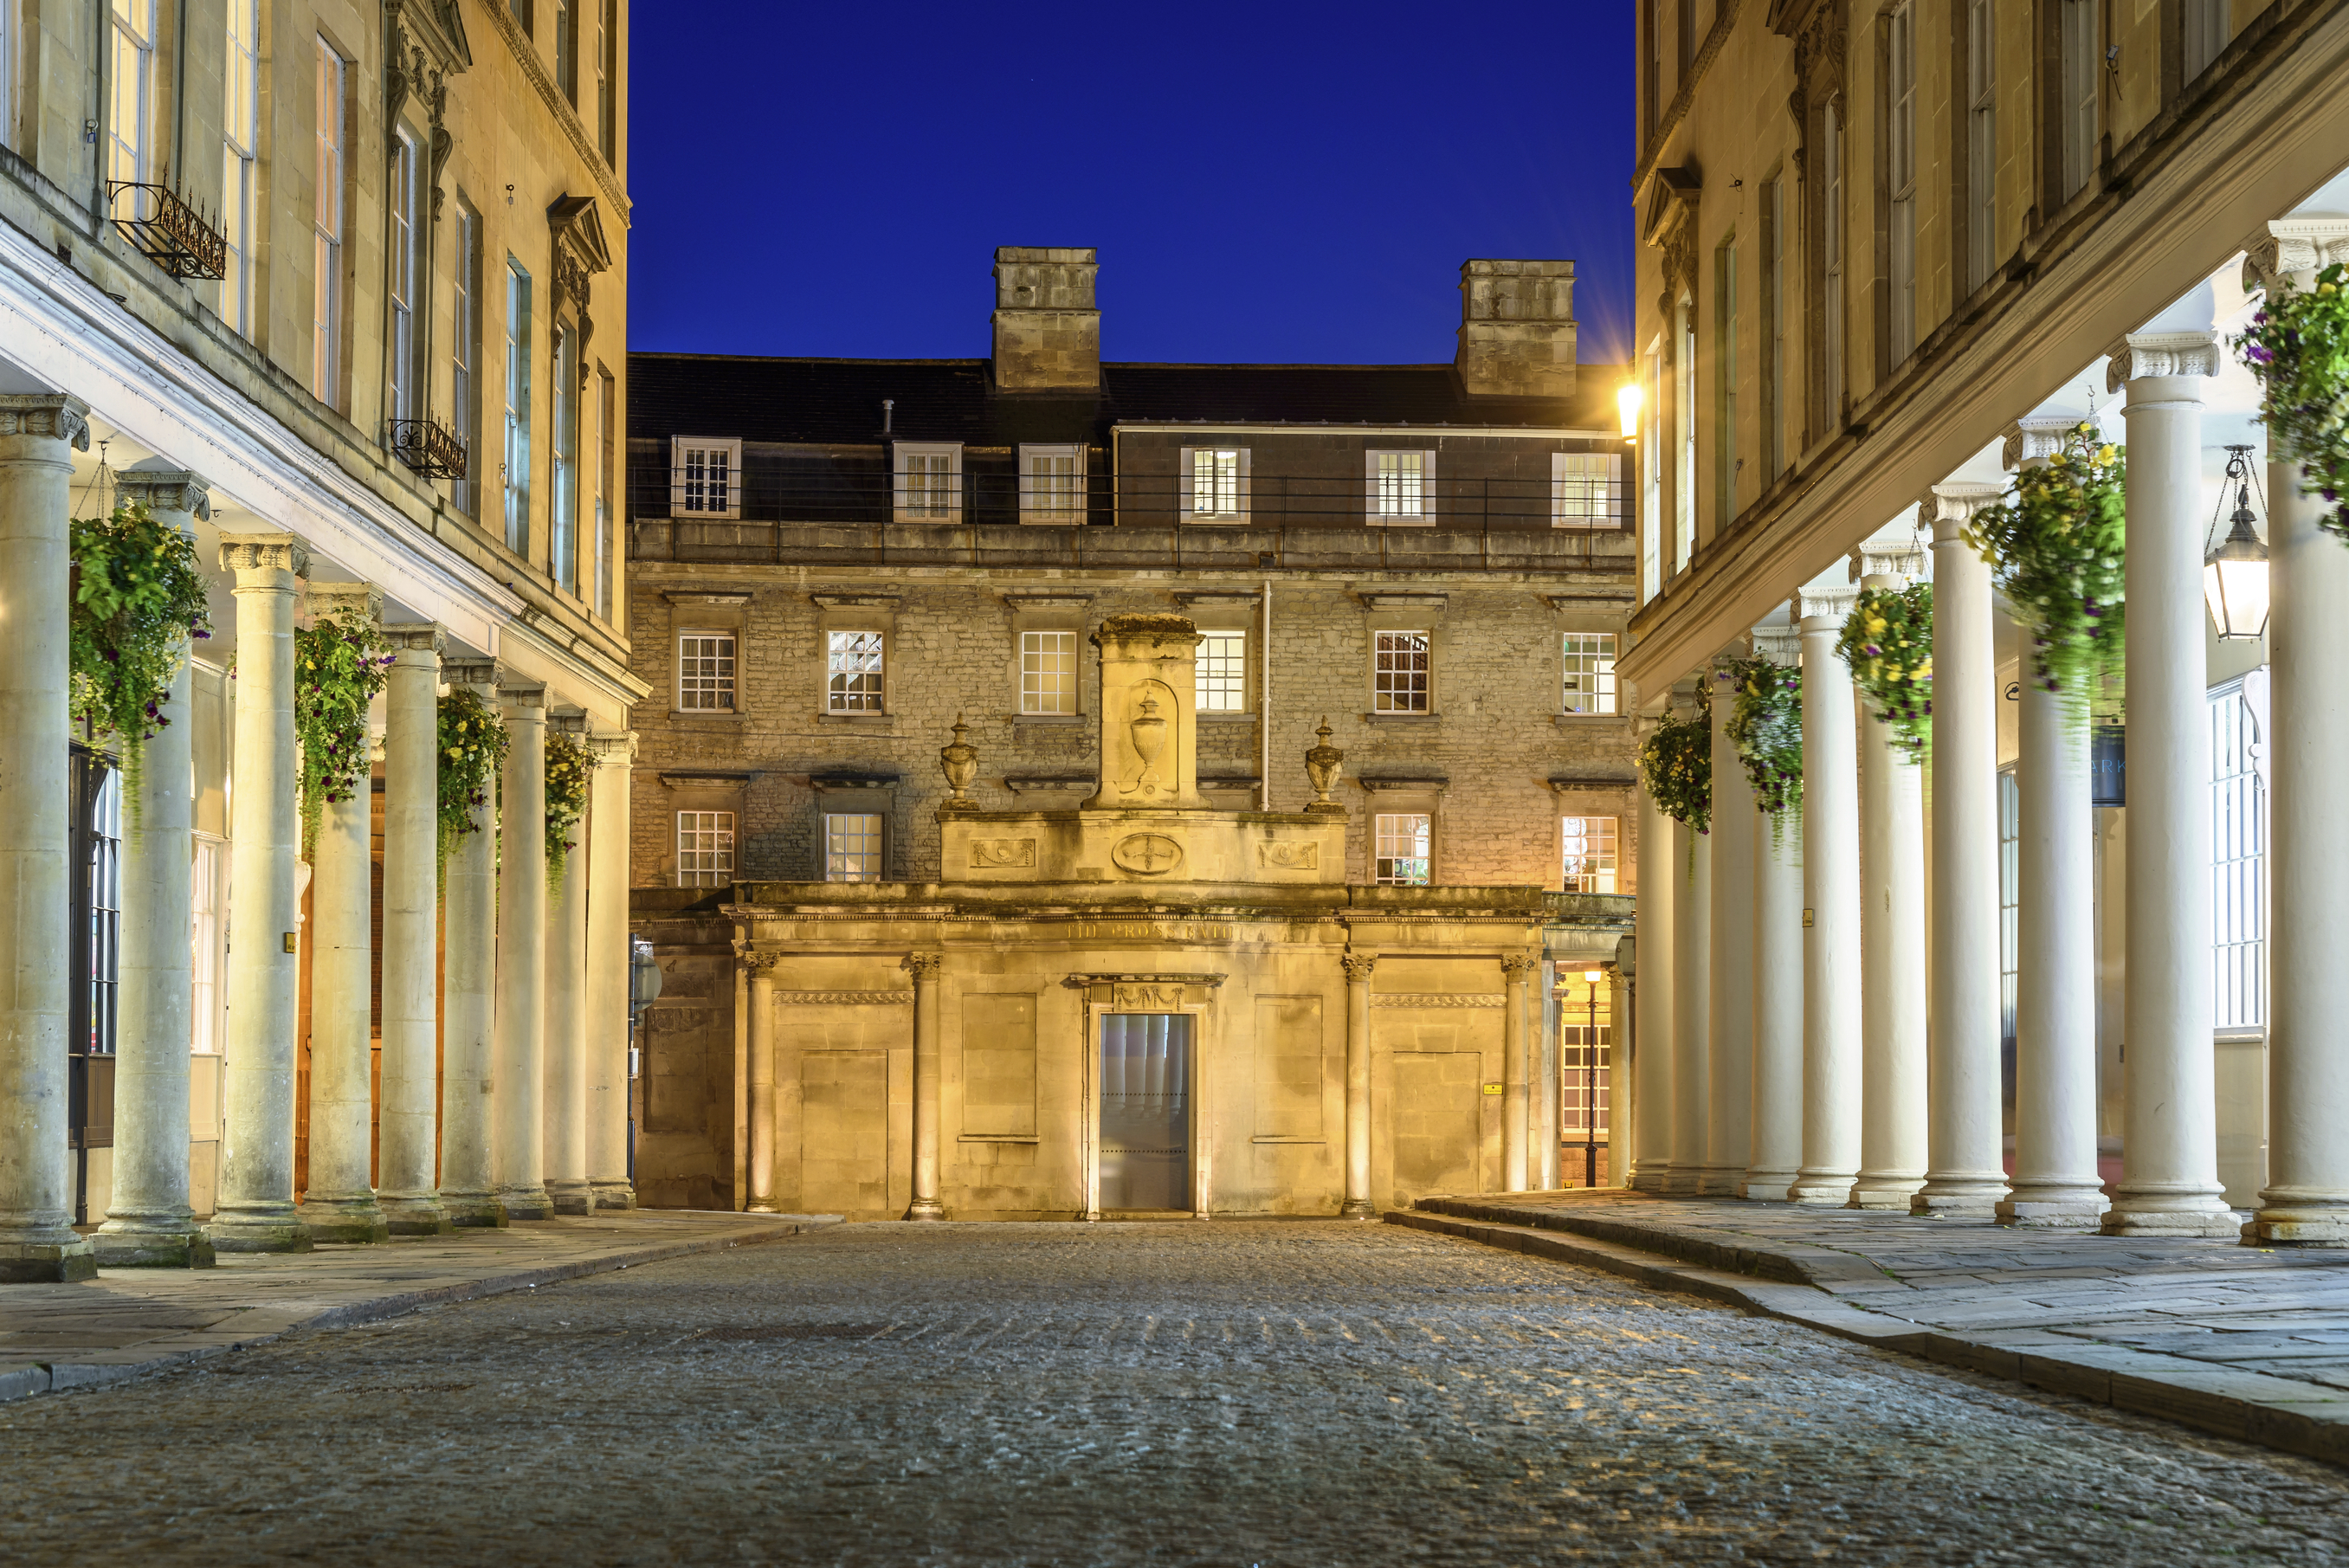 Cobbled streets of Bath